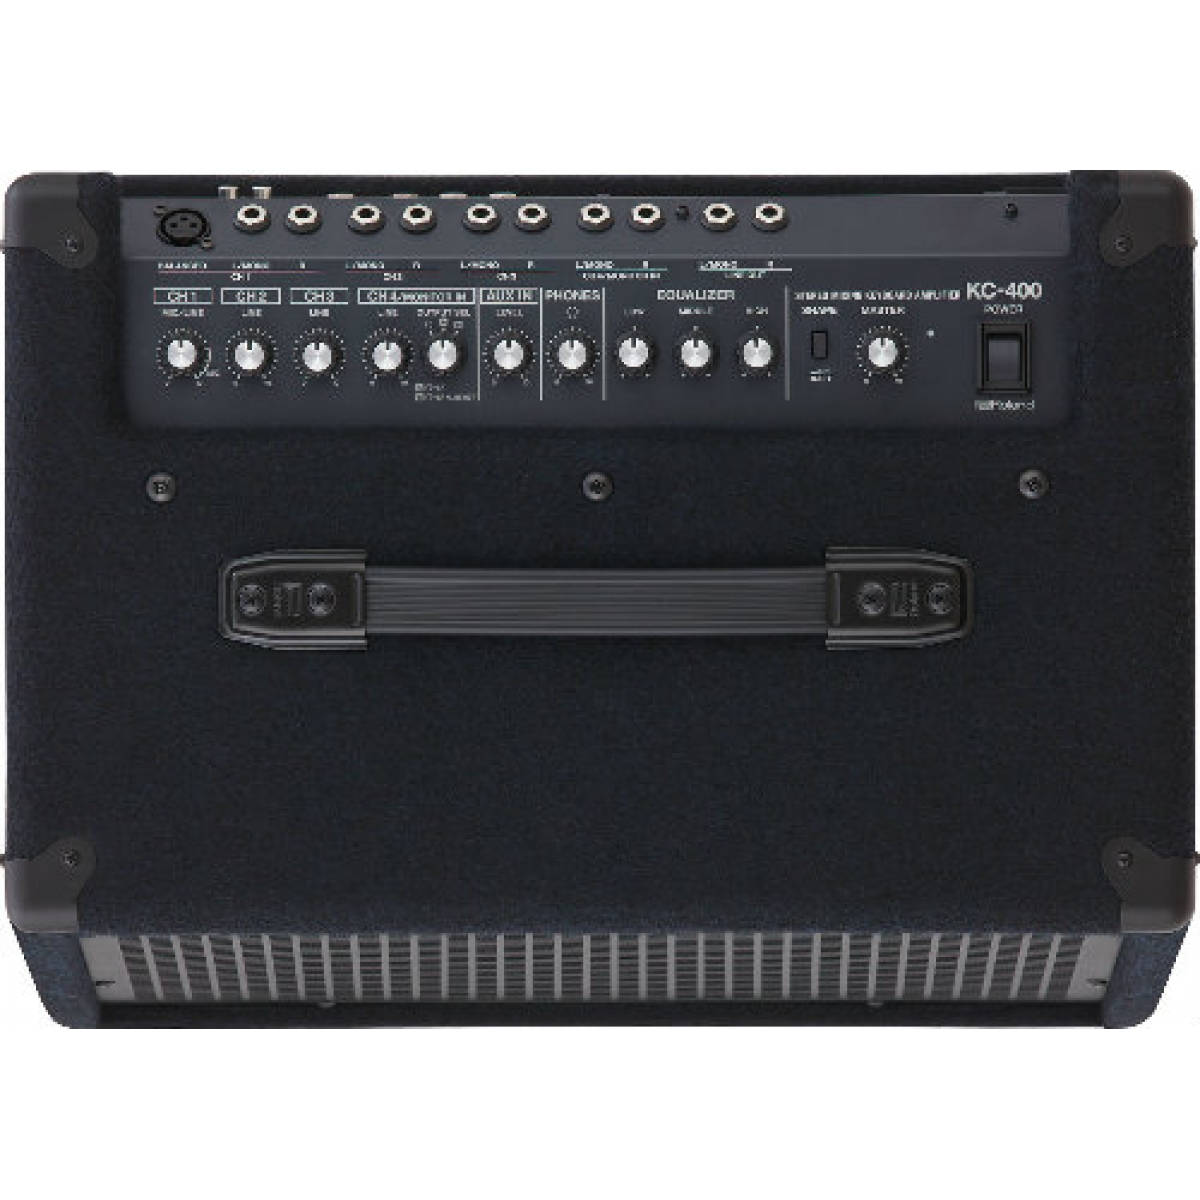 roland kc400 stereo mixing keyboard amplifier 150w 4 channels at promenade music. Black Bedroom Furniture Sets. Home Design Ideas